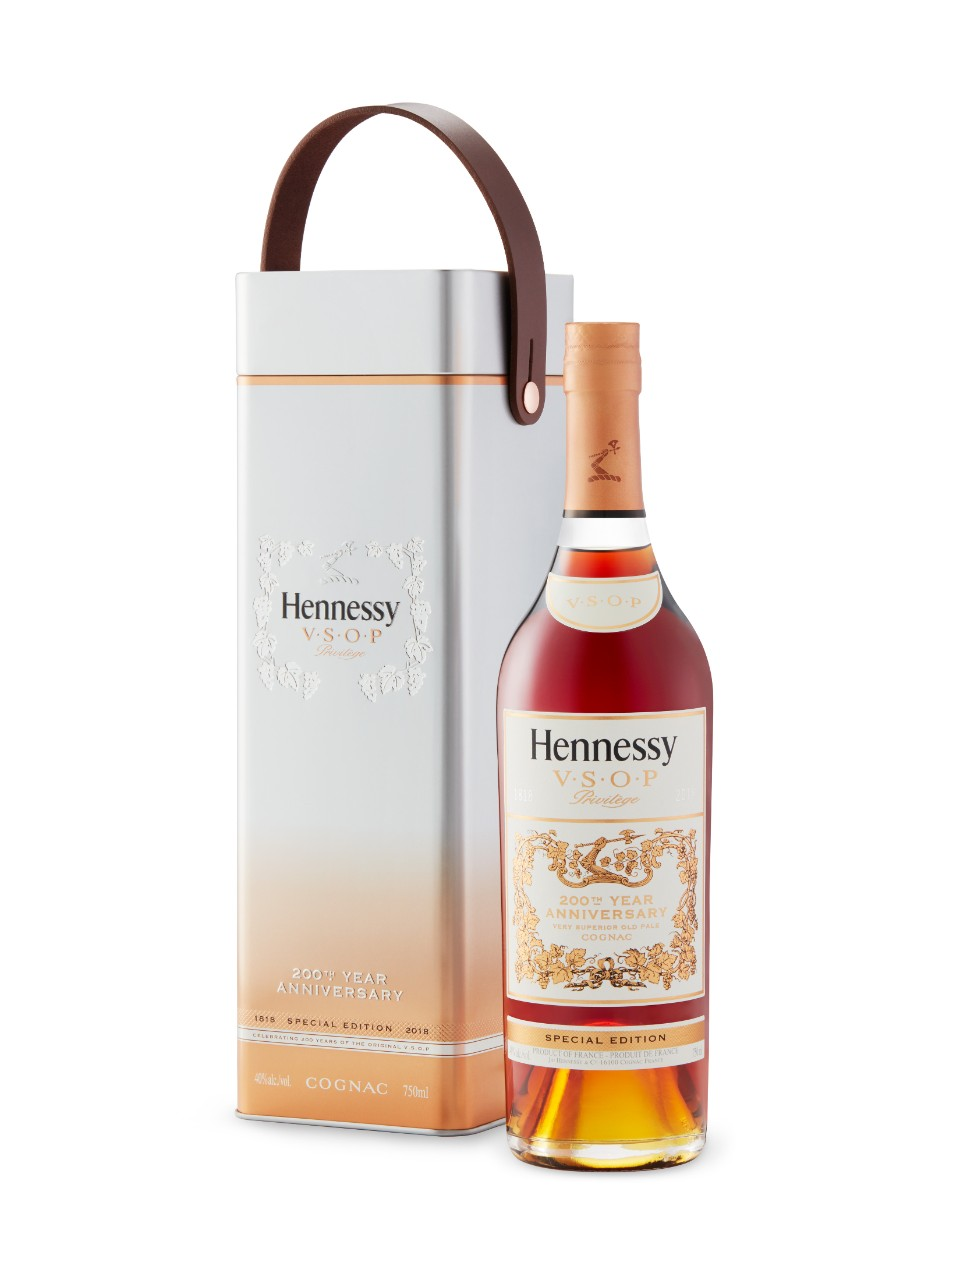 Cognac Hennessey VSOP 200th Anniversary Limited Edition